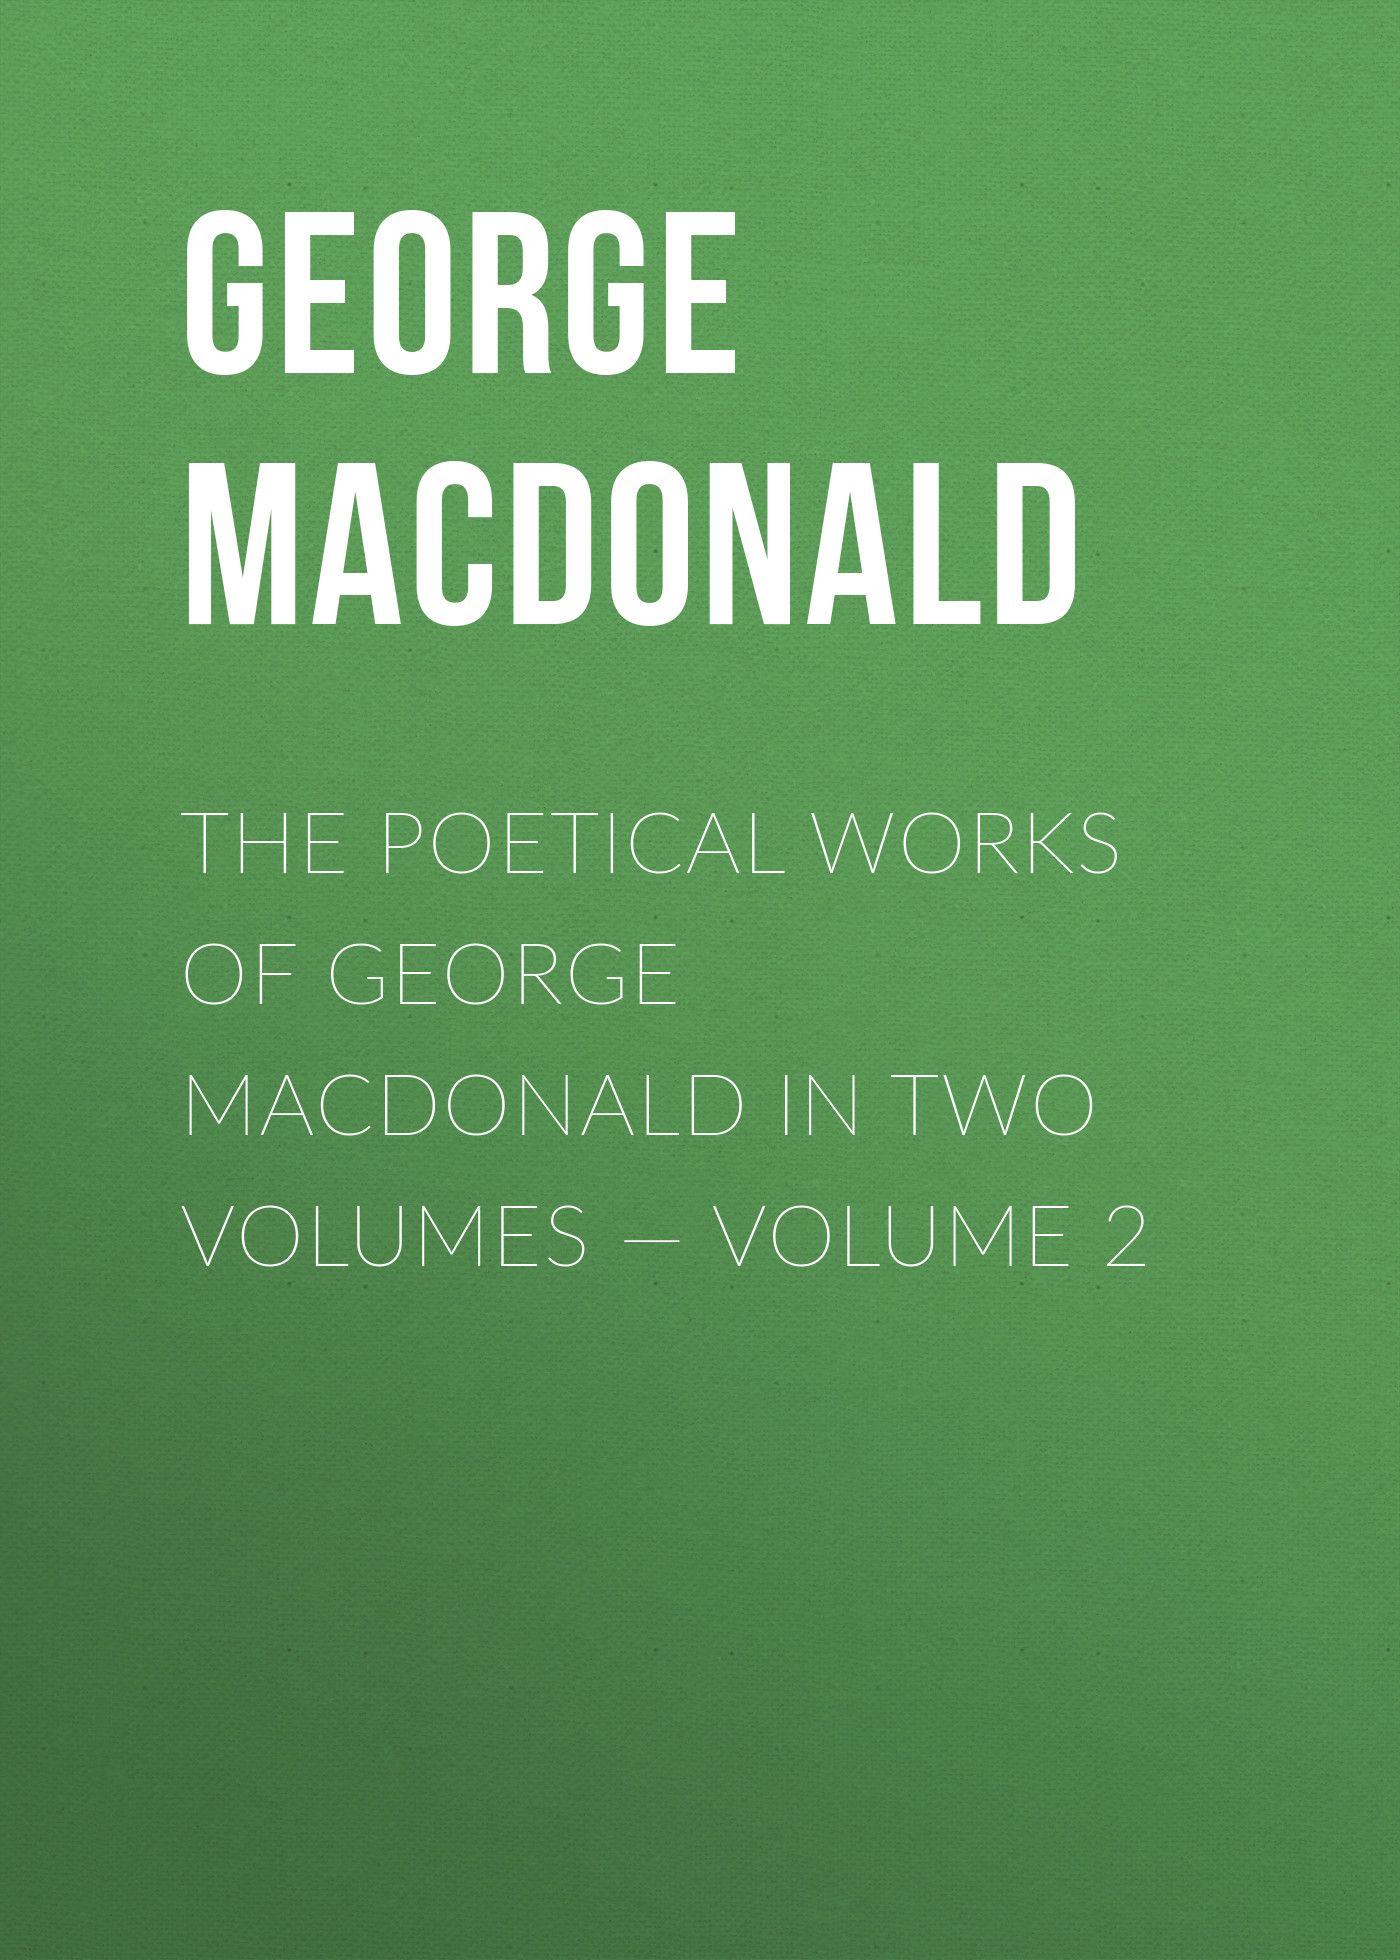 все цены на George MacDonald The poetical works of George MacDonald in two volumes — Volume 2 онлайн